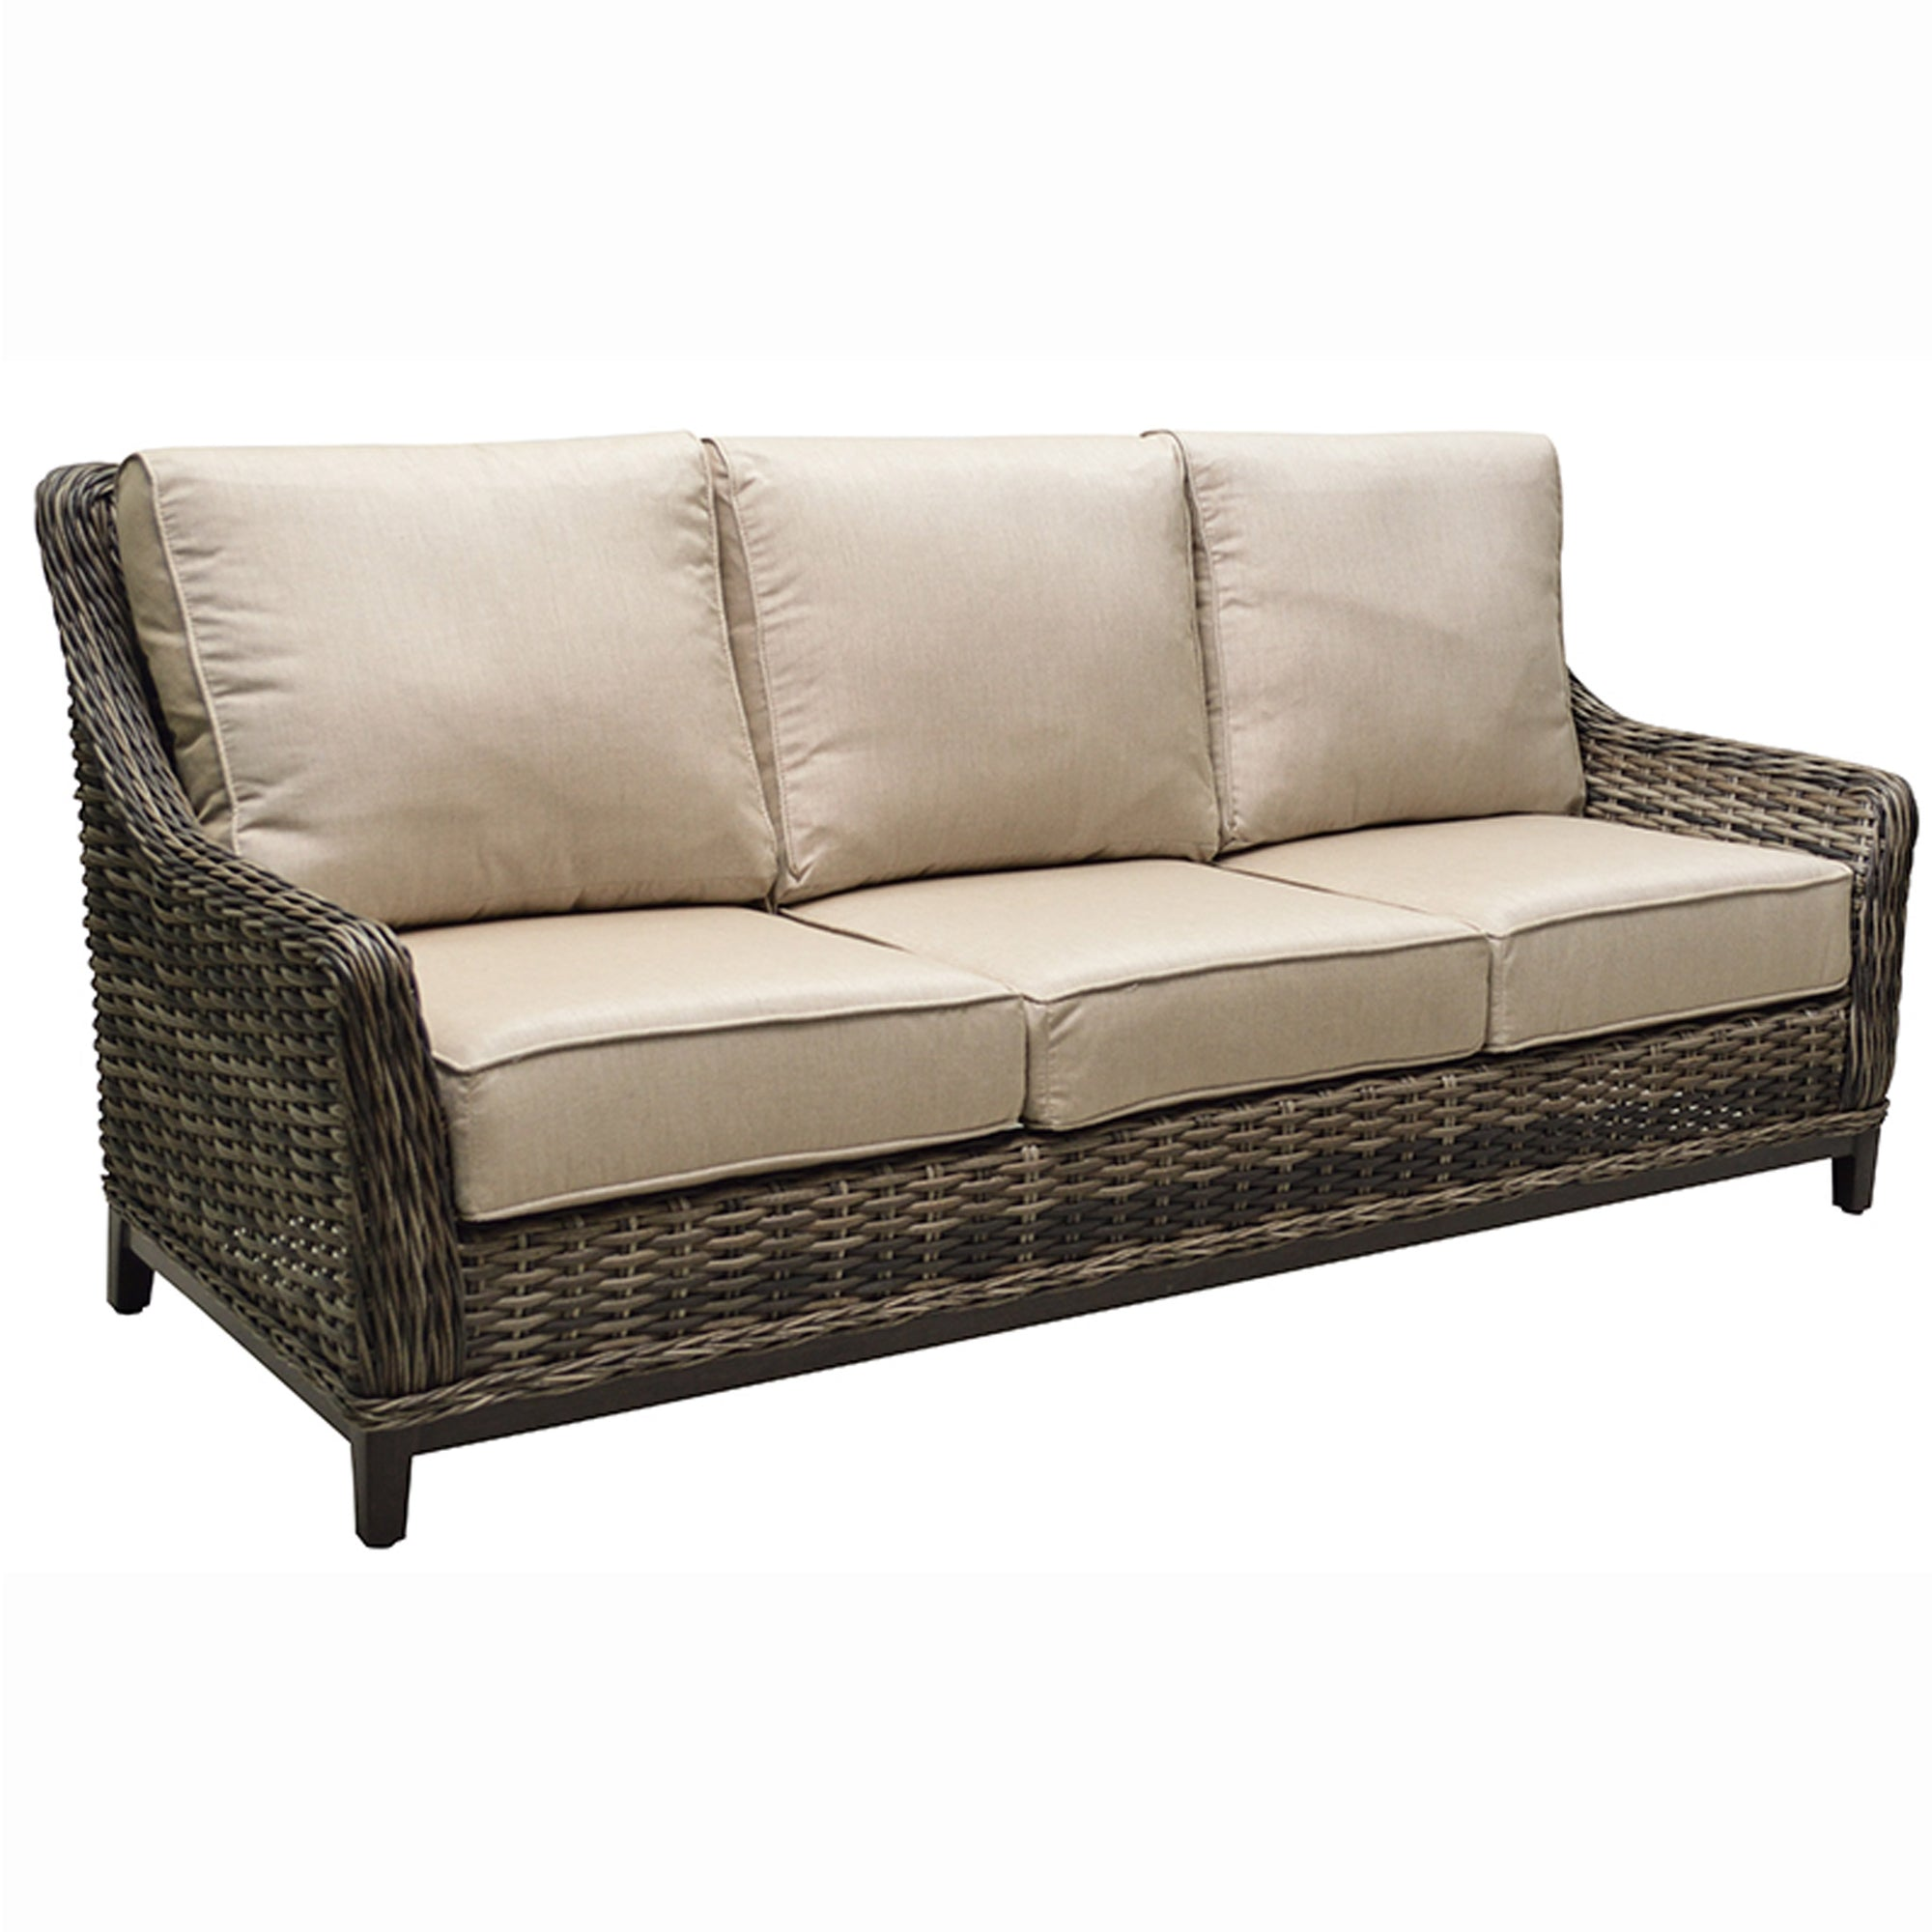 Outdoor Patio Couch Set, Catalina High Back Sofa Seating Sets Greathouse